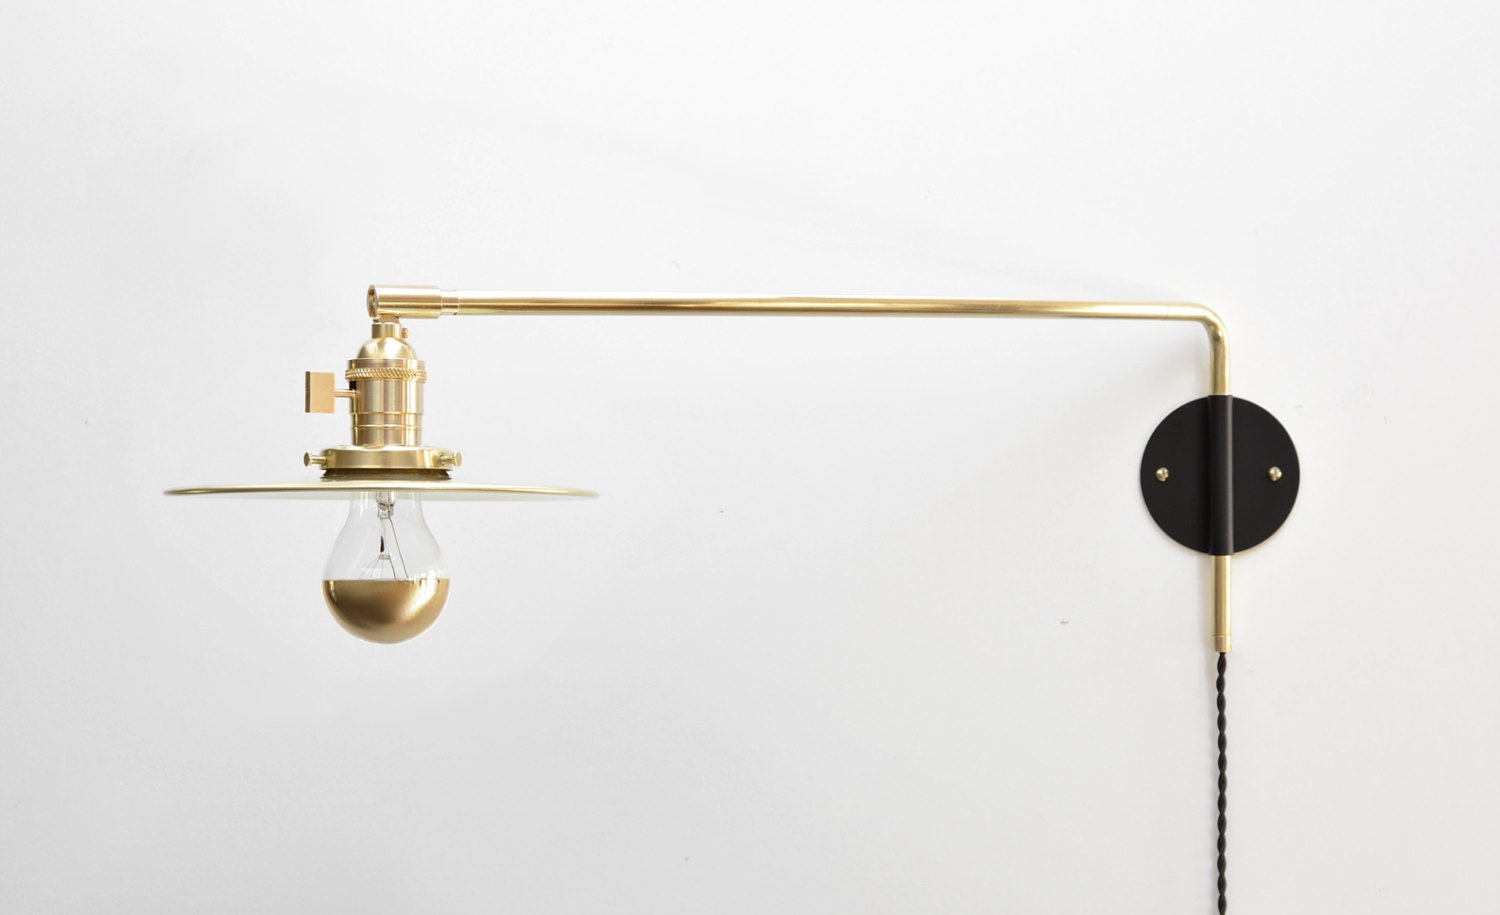 Modern industrial brass swing arm sconce 14 20 or 26 inch extension adjustable lamp bedside lamp wall light the szabo